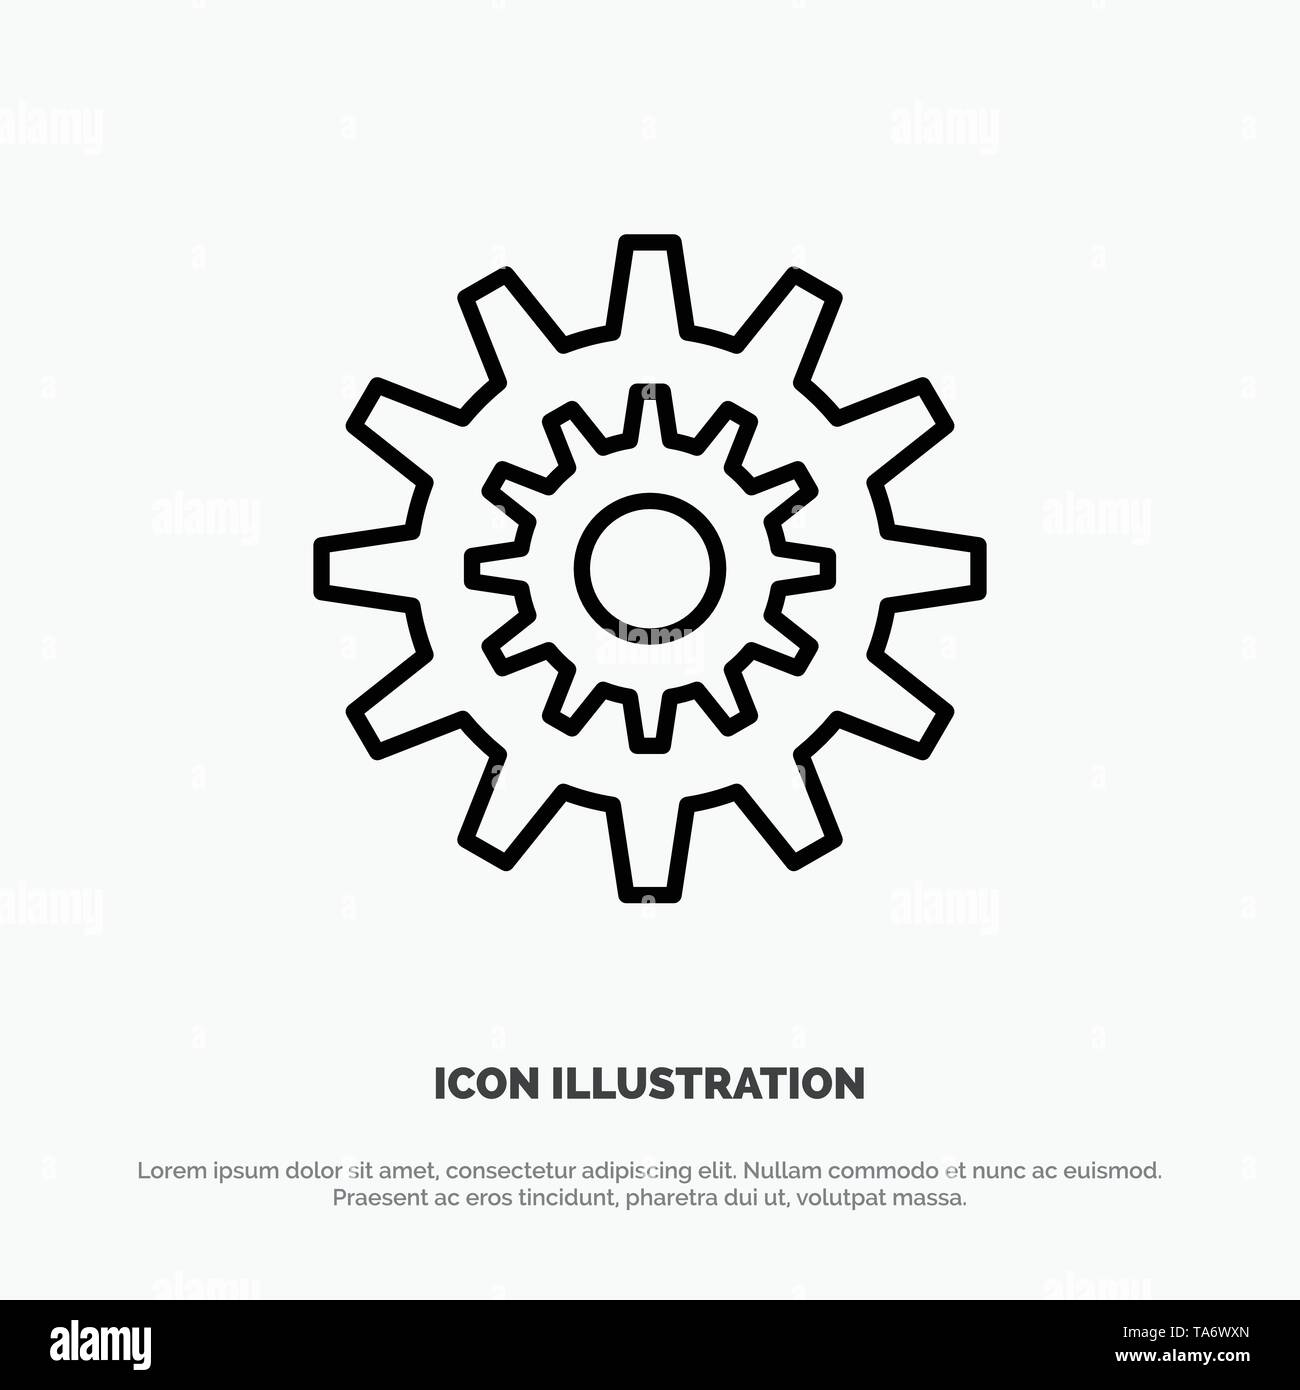 Settings, Cog, Gear, Production, System, Wheel, Work Line Icon